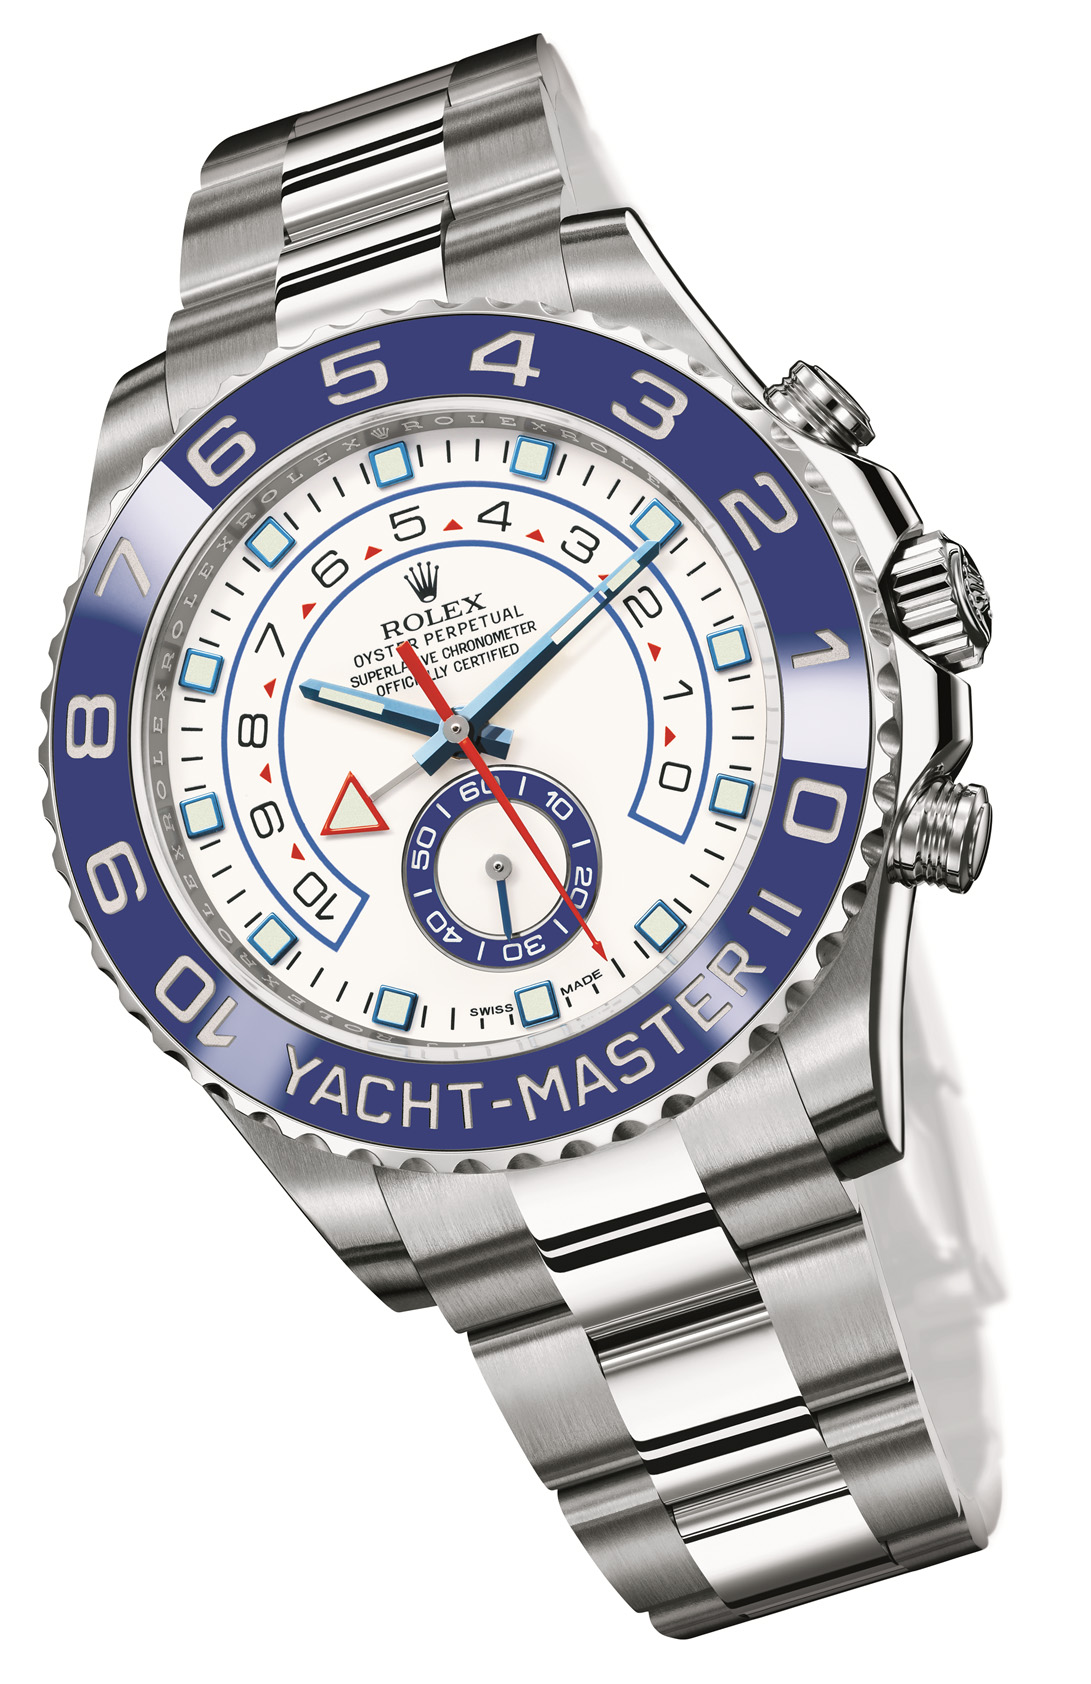 Stainless Steel Rolex Yacht-Master II replica